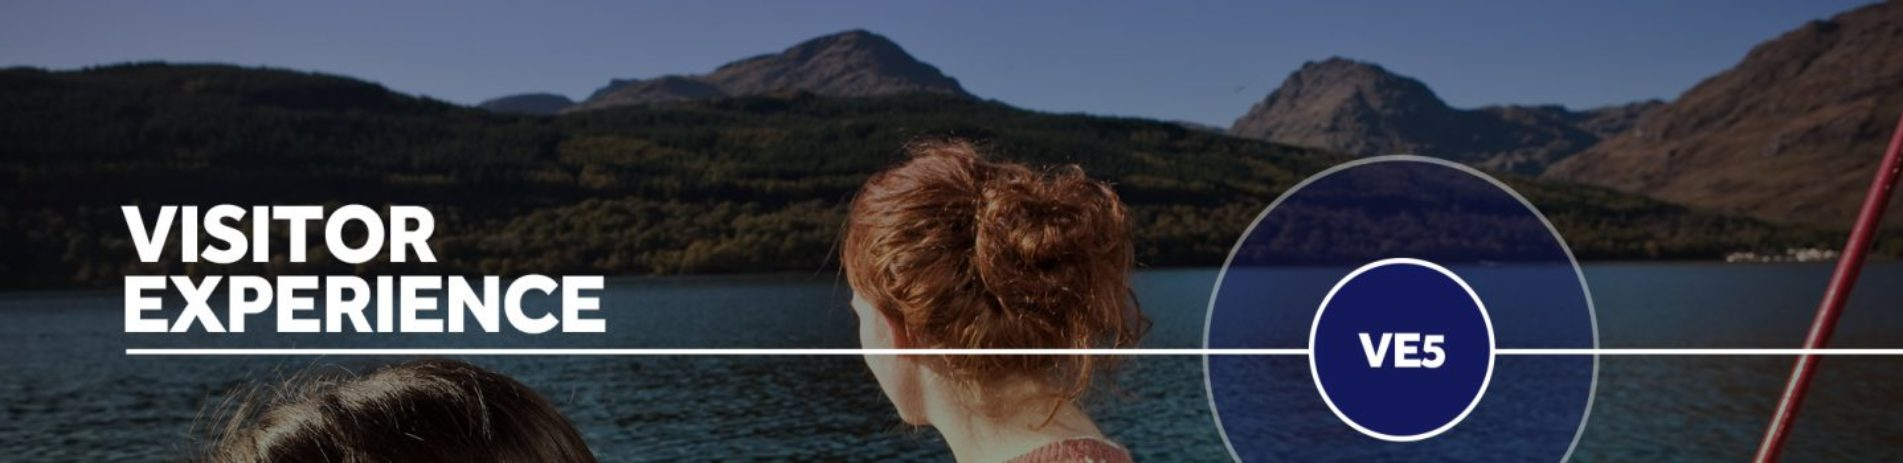 visitor-experience-banner-image-loch-mountains